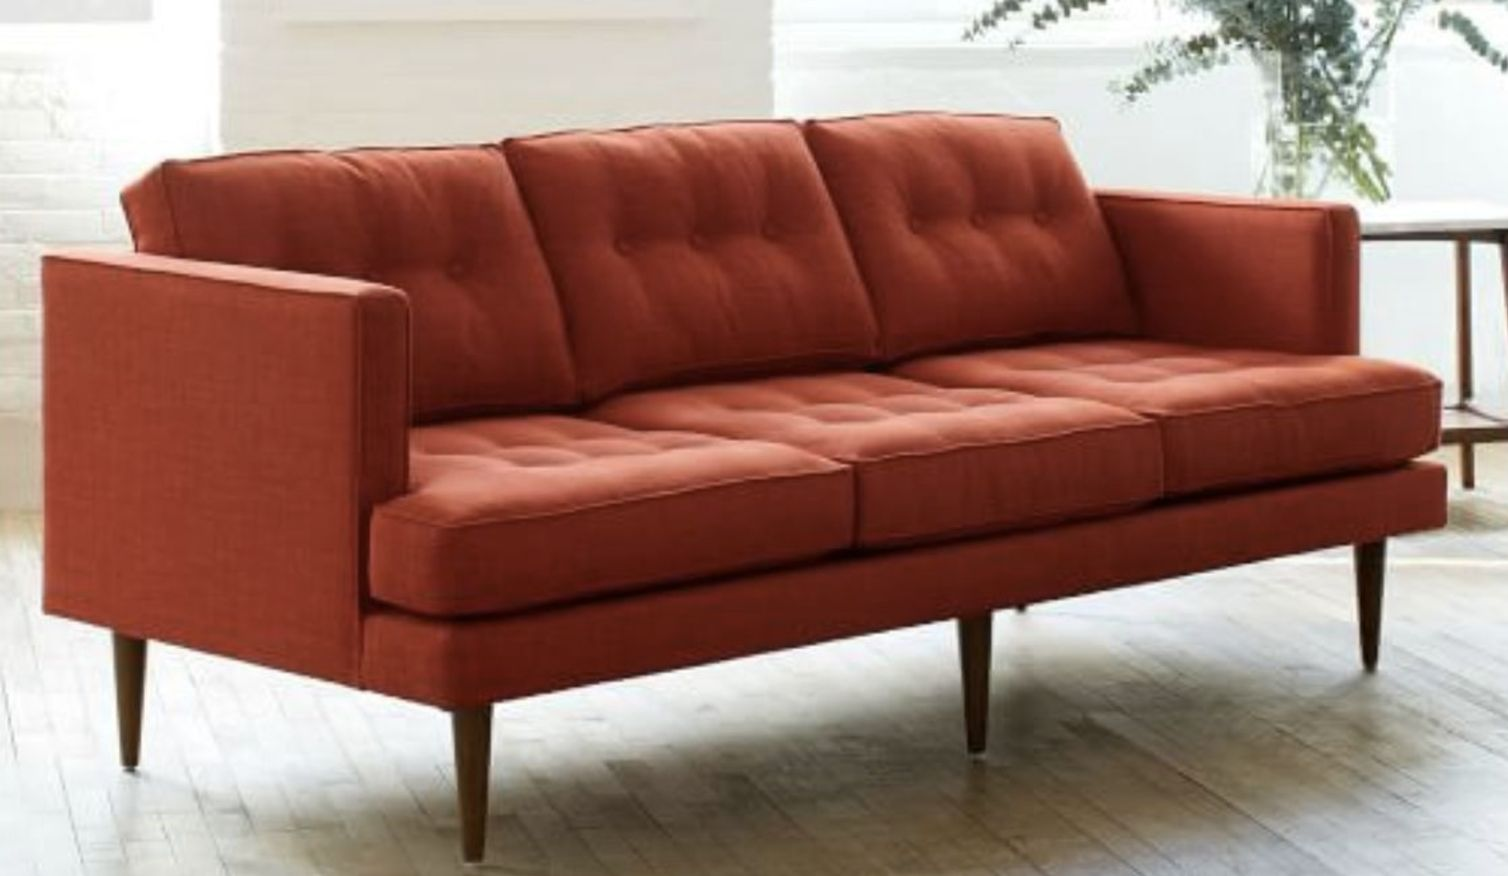 A Writer Shamed This Couch So Hard West Elm Is Offering Refunds (UPDATED)